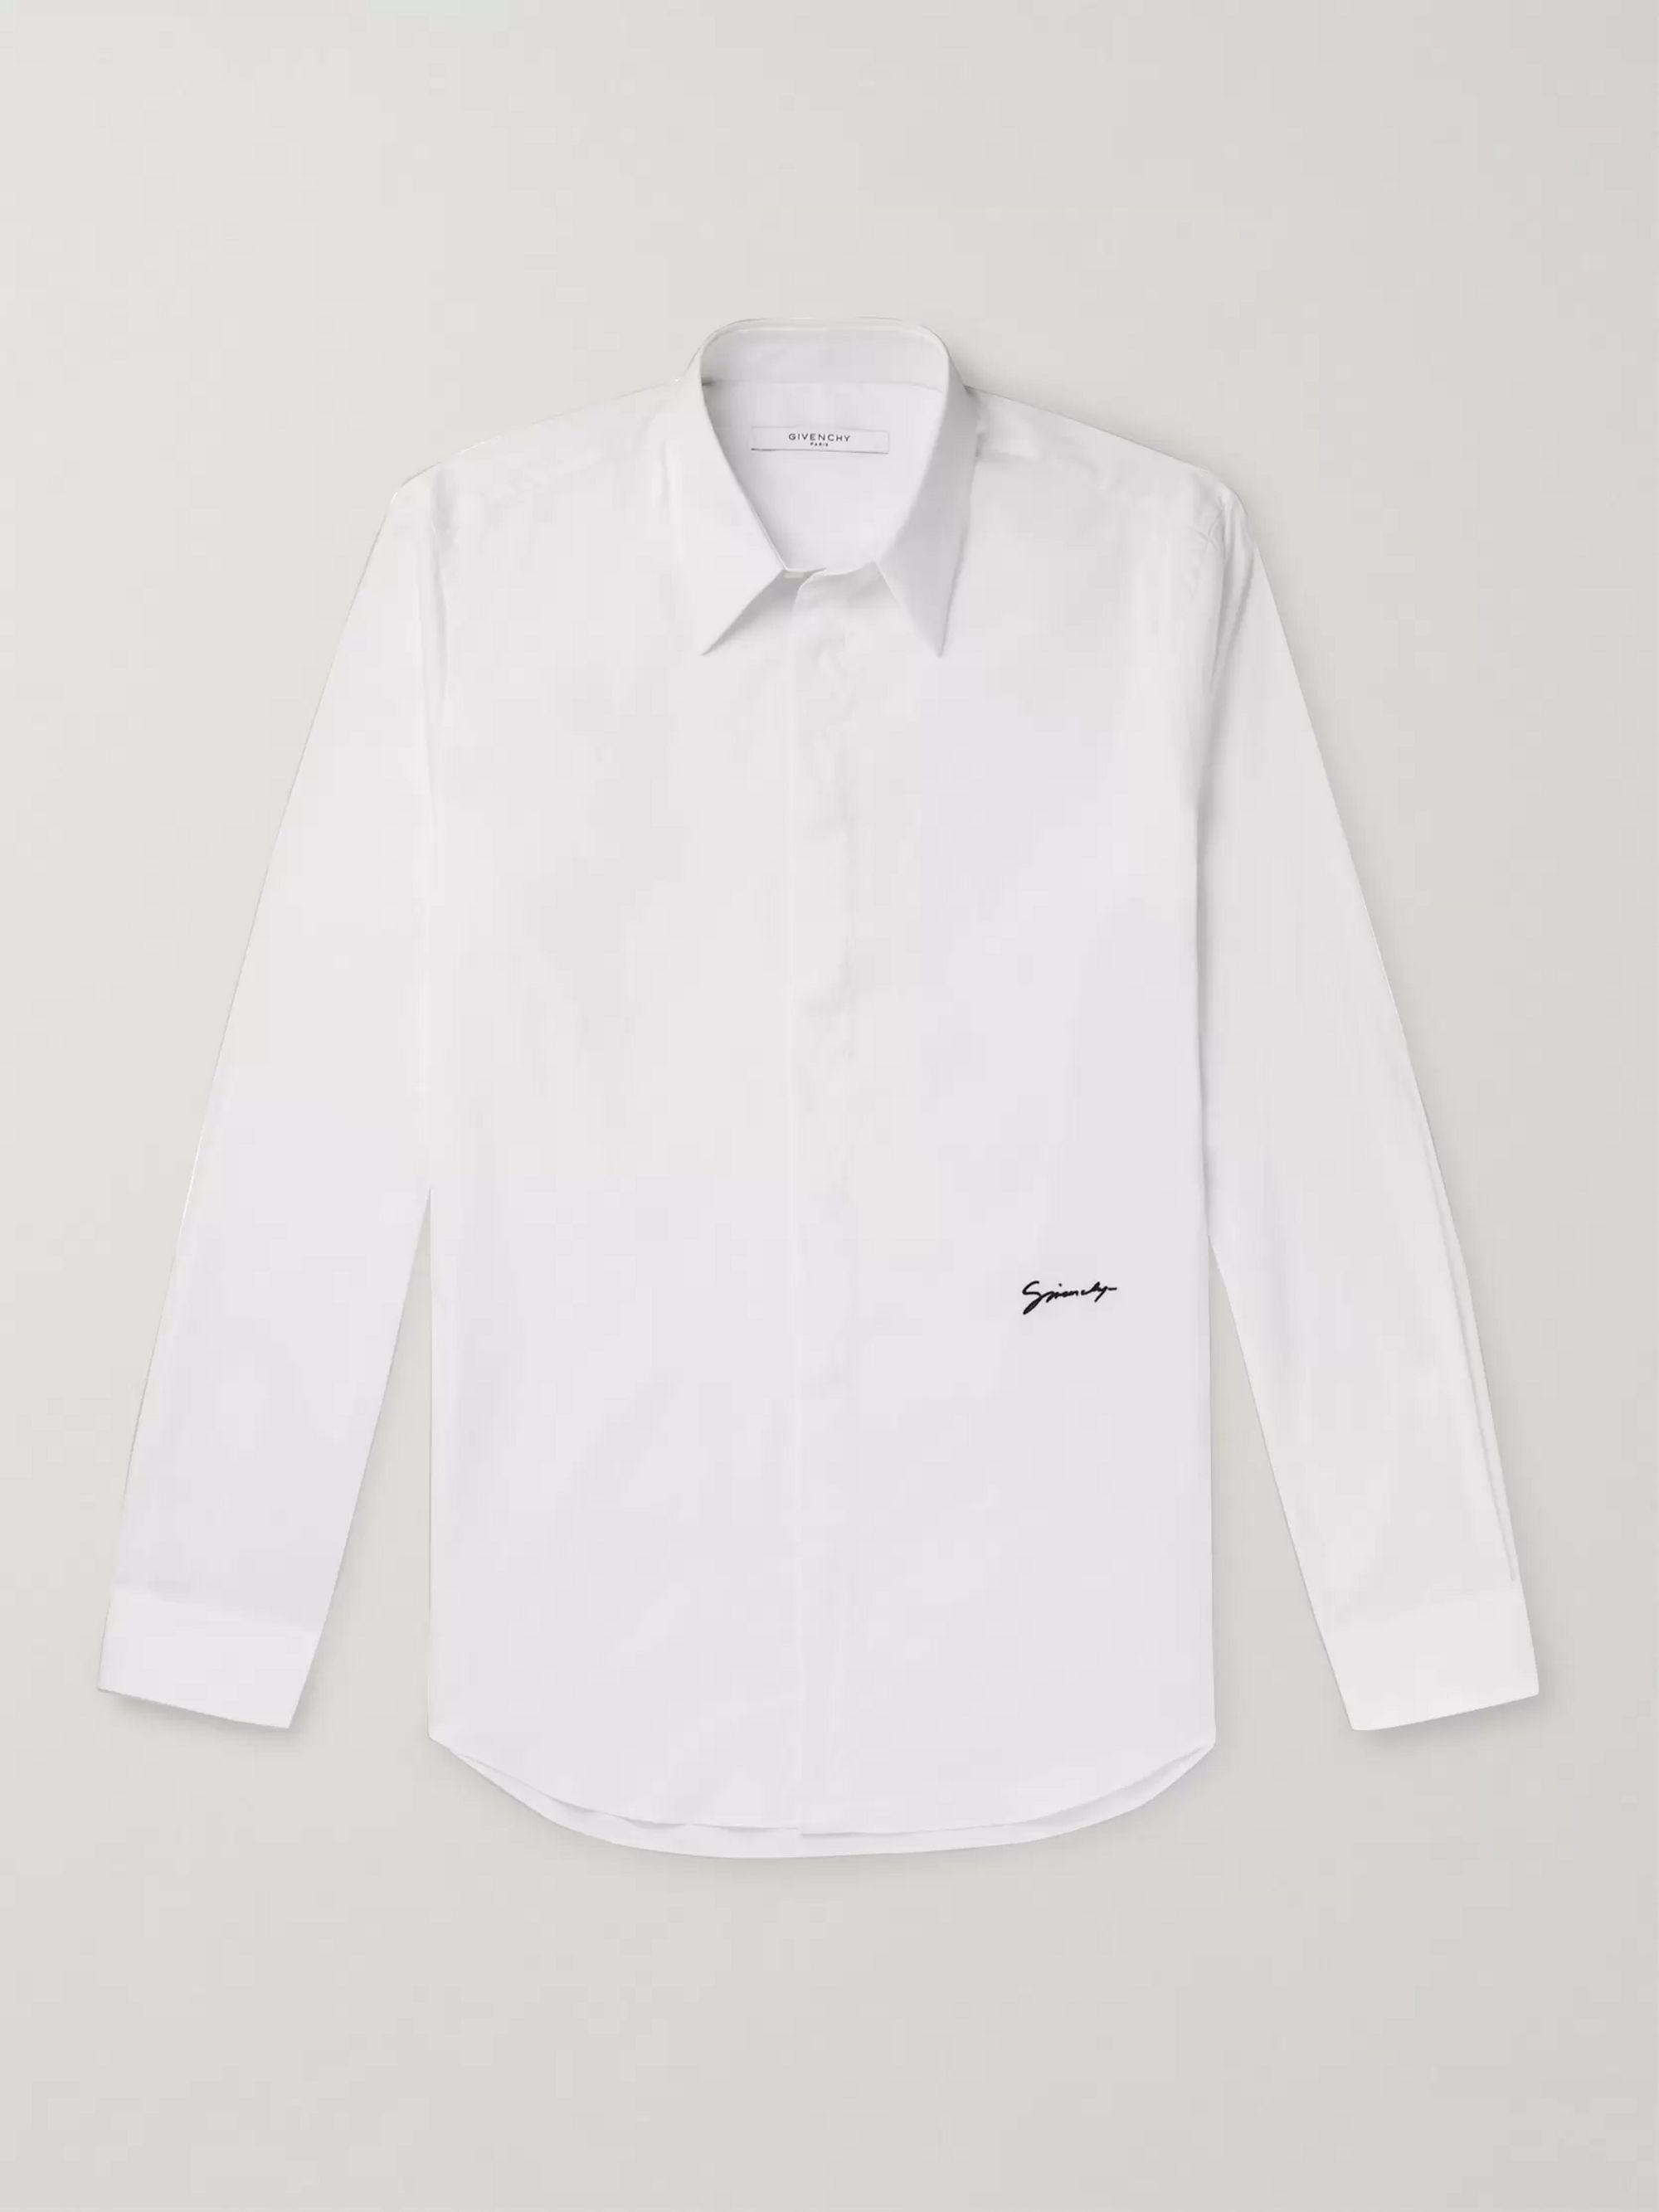 Givenchy Slim-Fit Logo-Embroidered Cotton-Blend Poplin Shirt